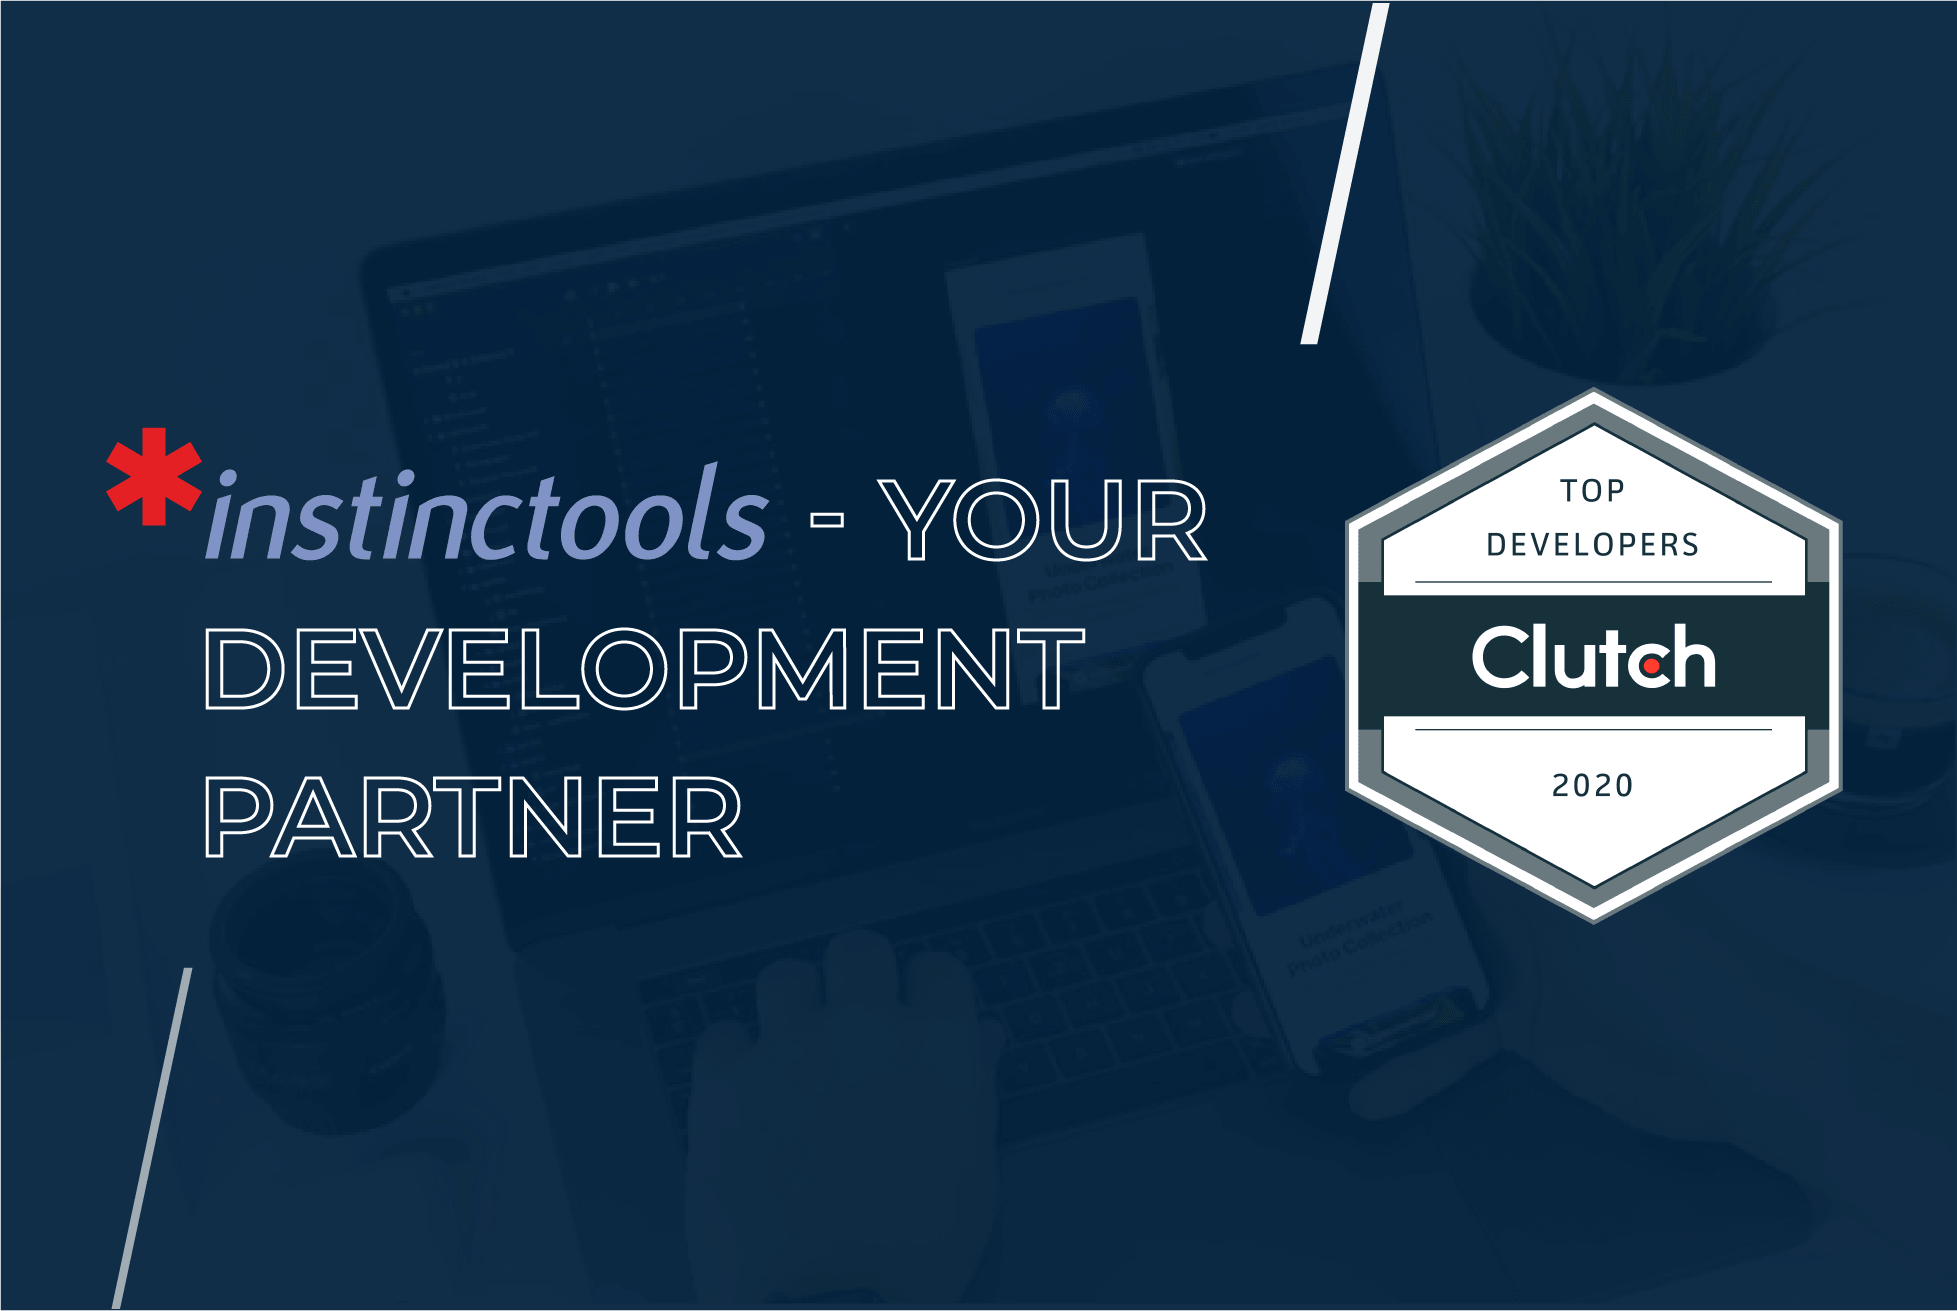 Instinctools is proud to be named a top development partner by Clutch